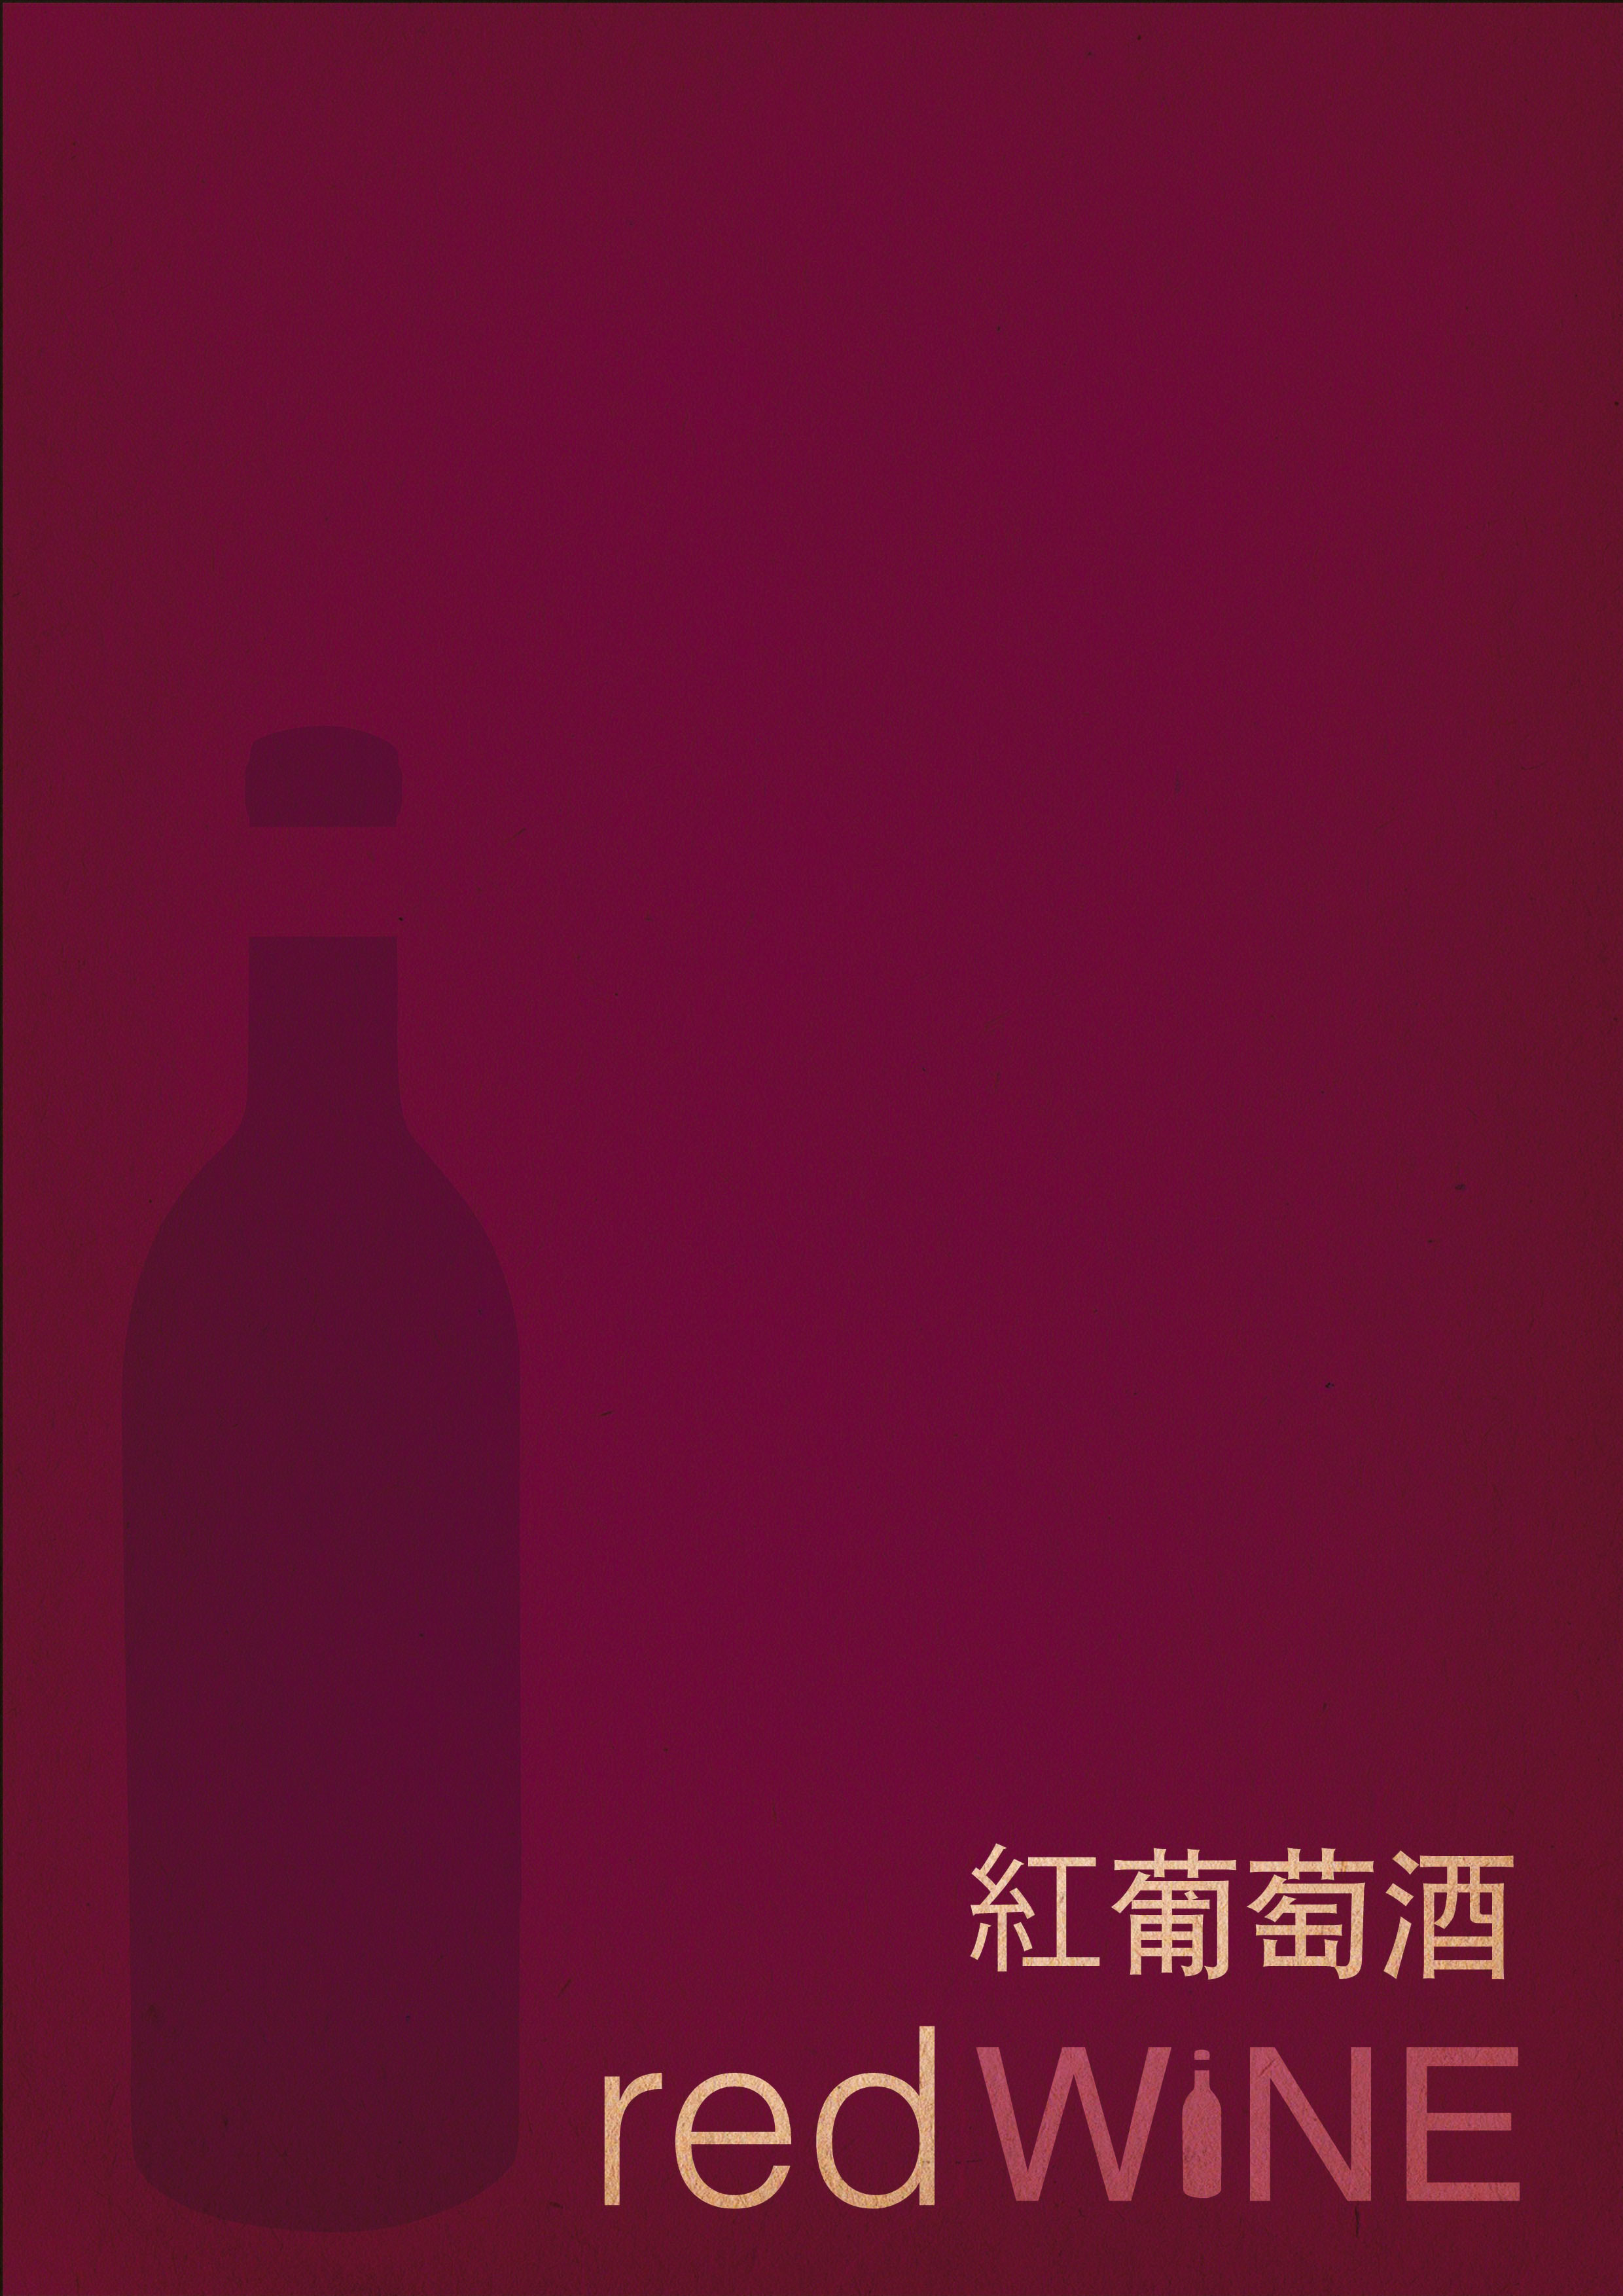 red wine poster | robert botey beguiristain